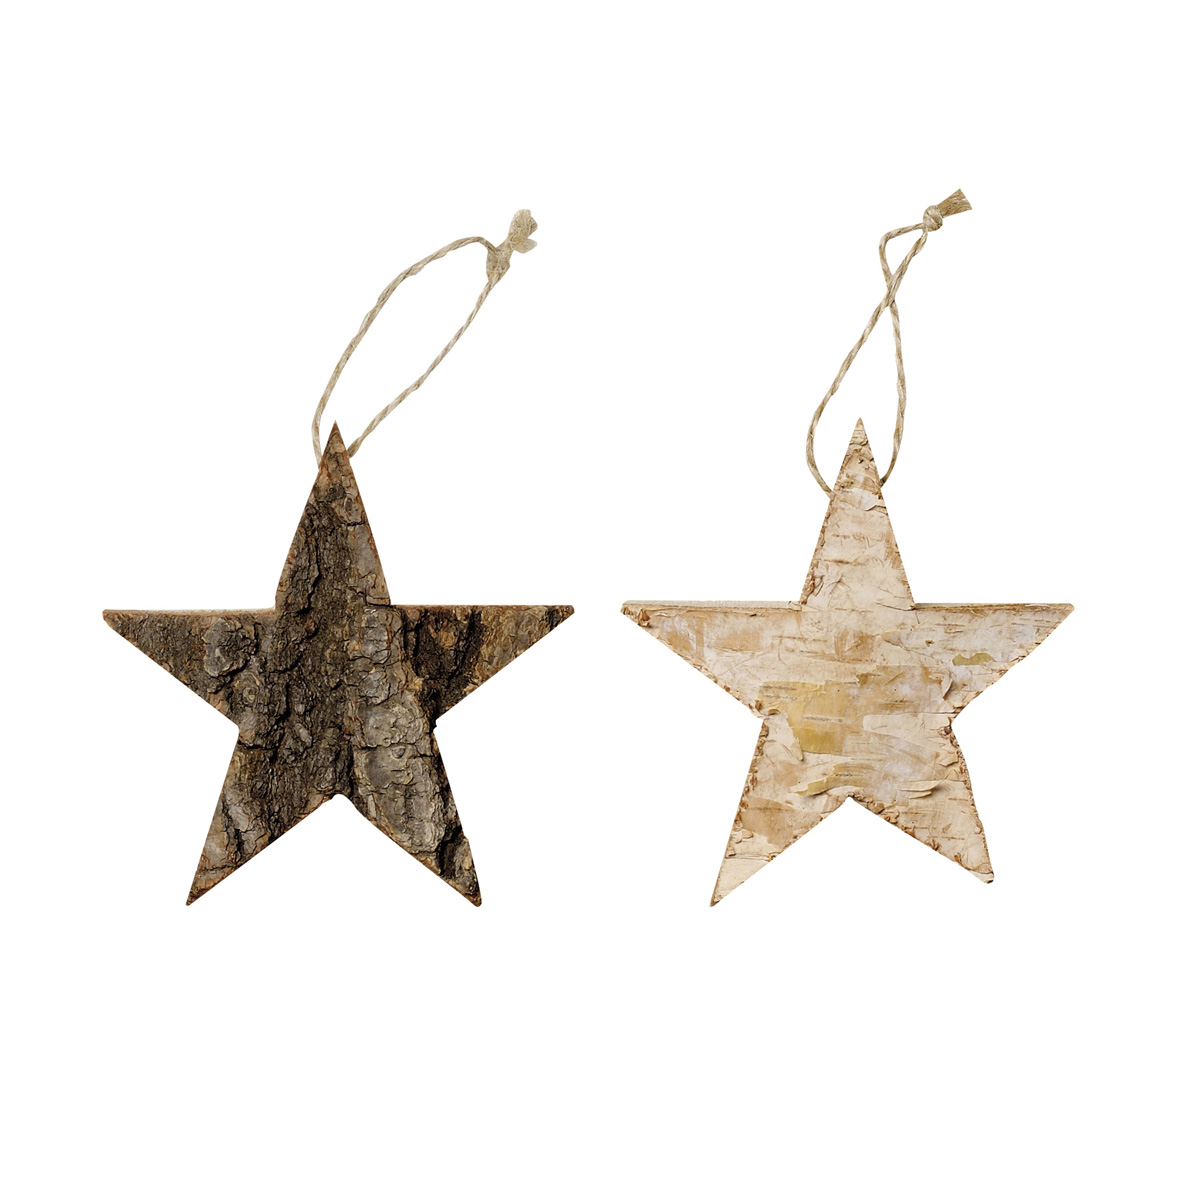 wood-bark-star-christmas-decorations